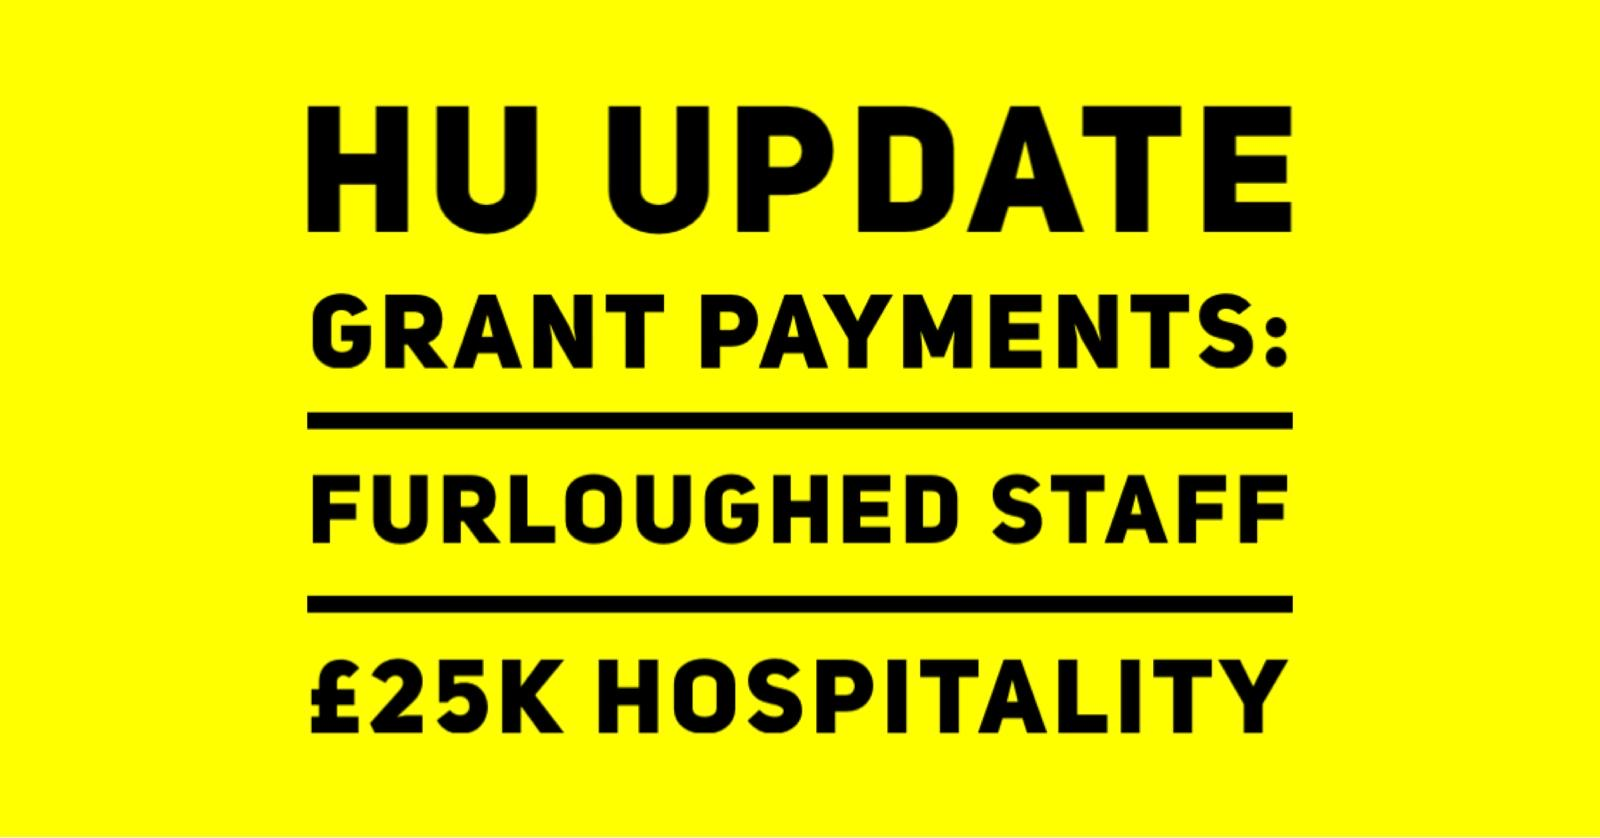 HU UPDATE GRANT PAYMENTS FURLOUGHED STAFF 25K HOSPITALITY